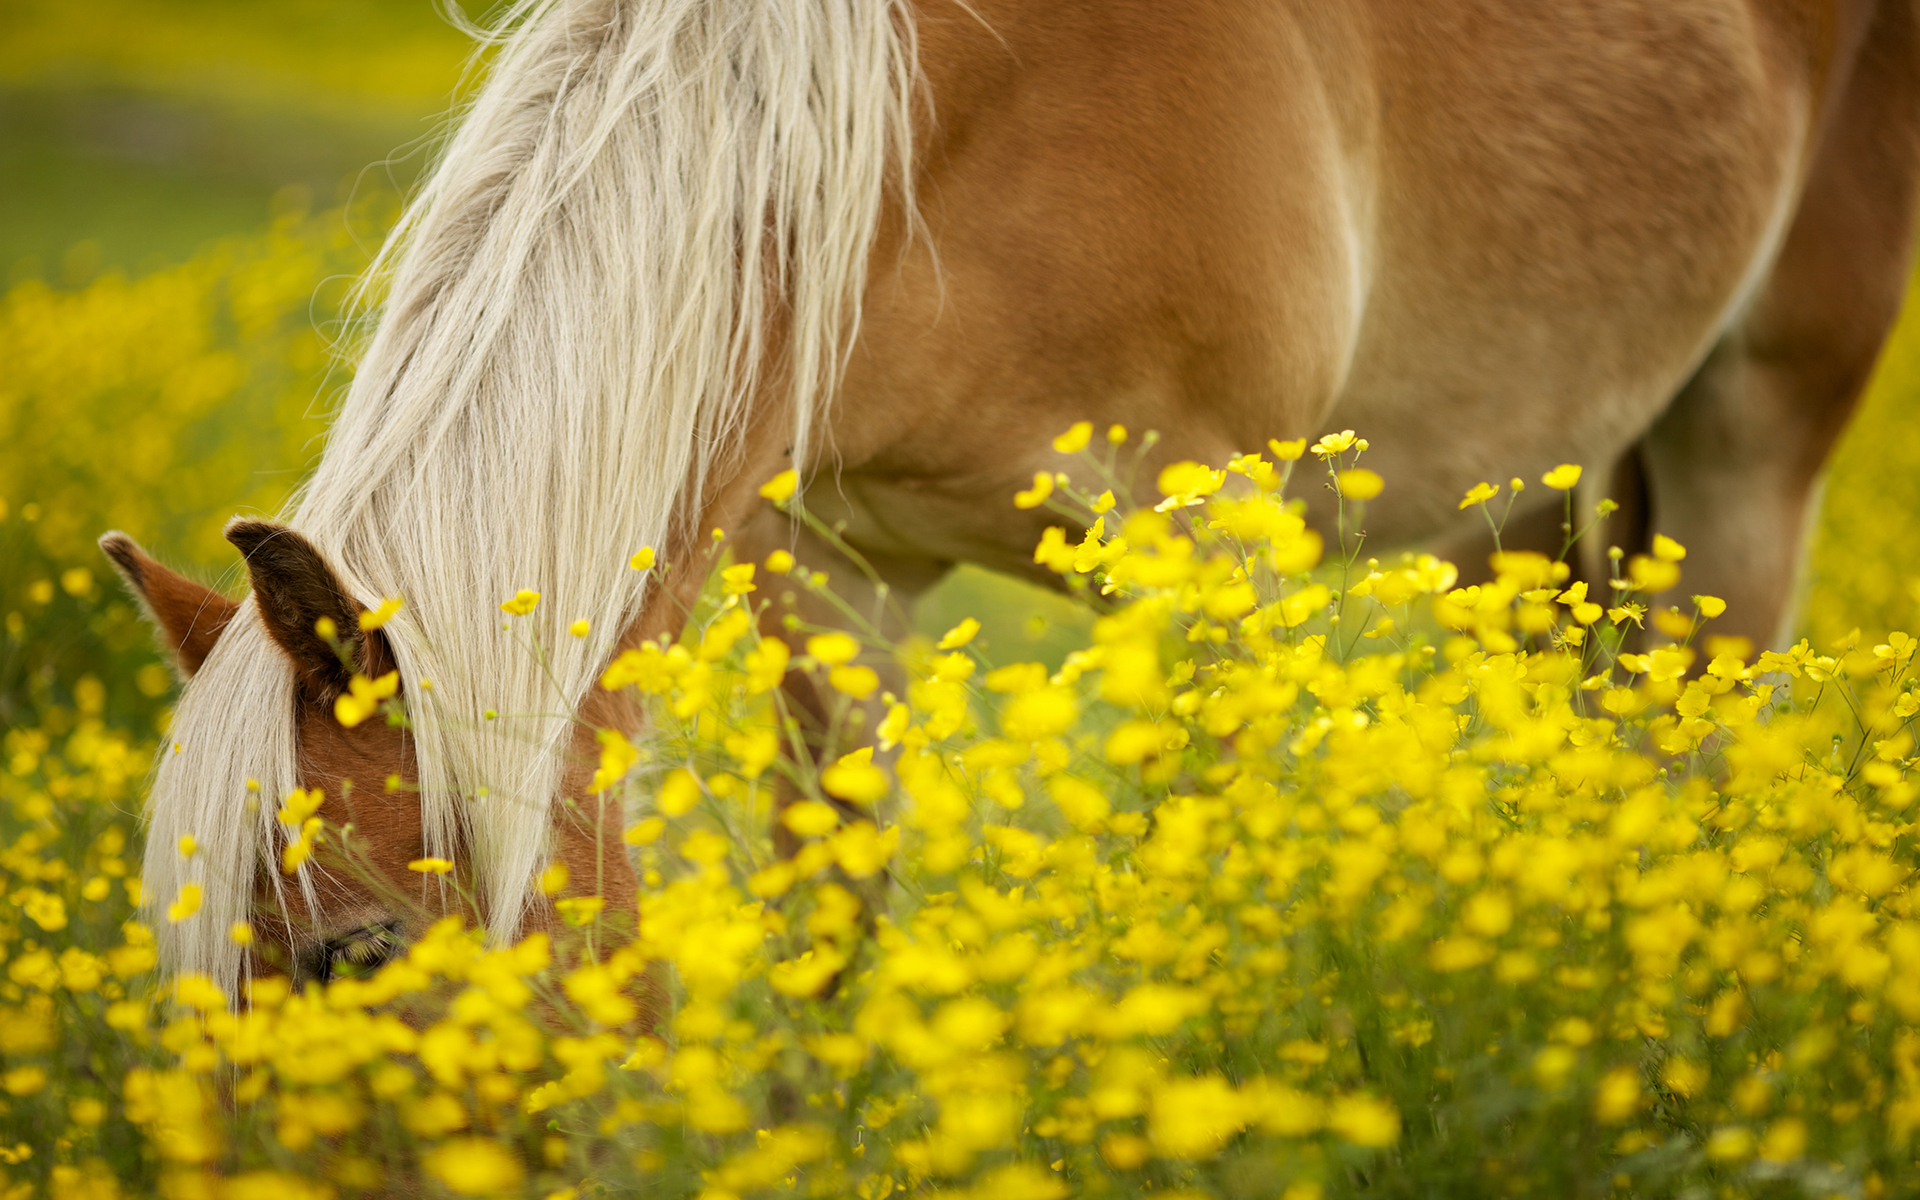 Pony in flower field